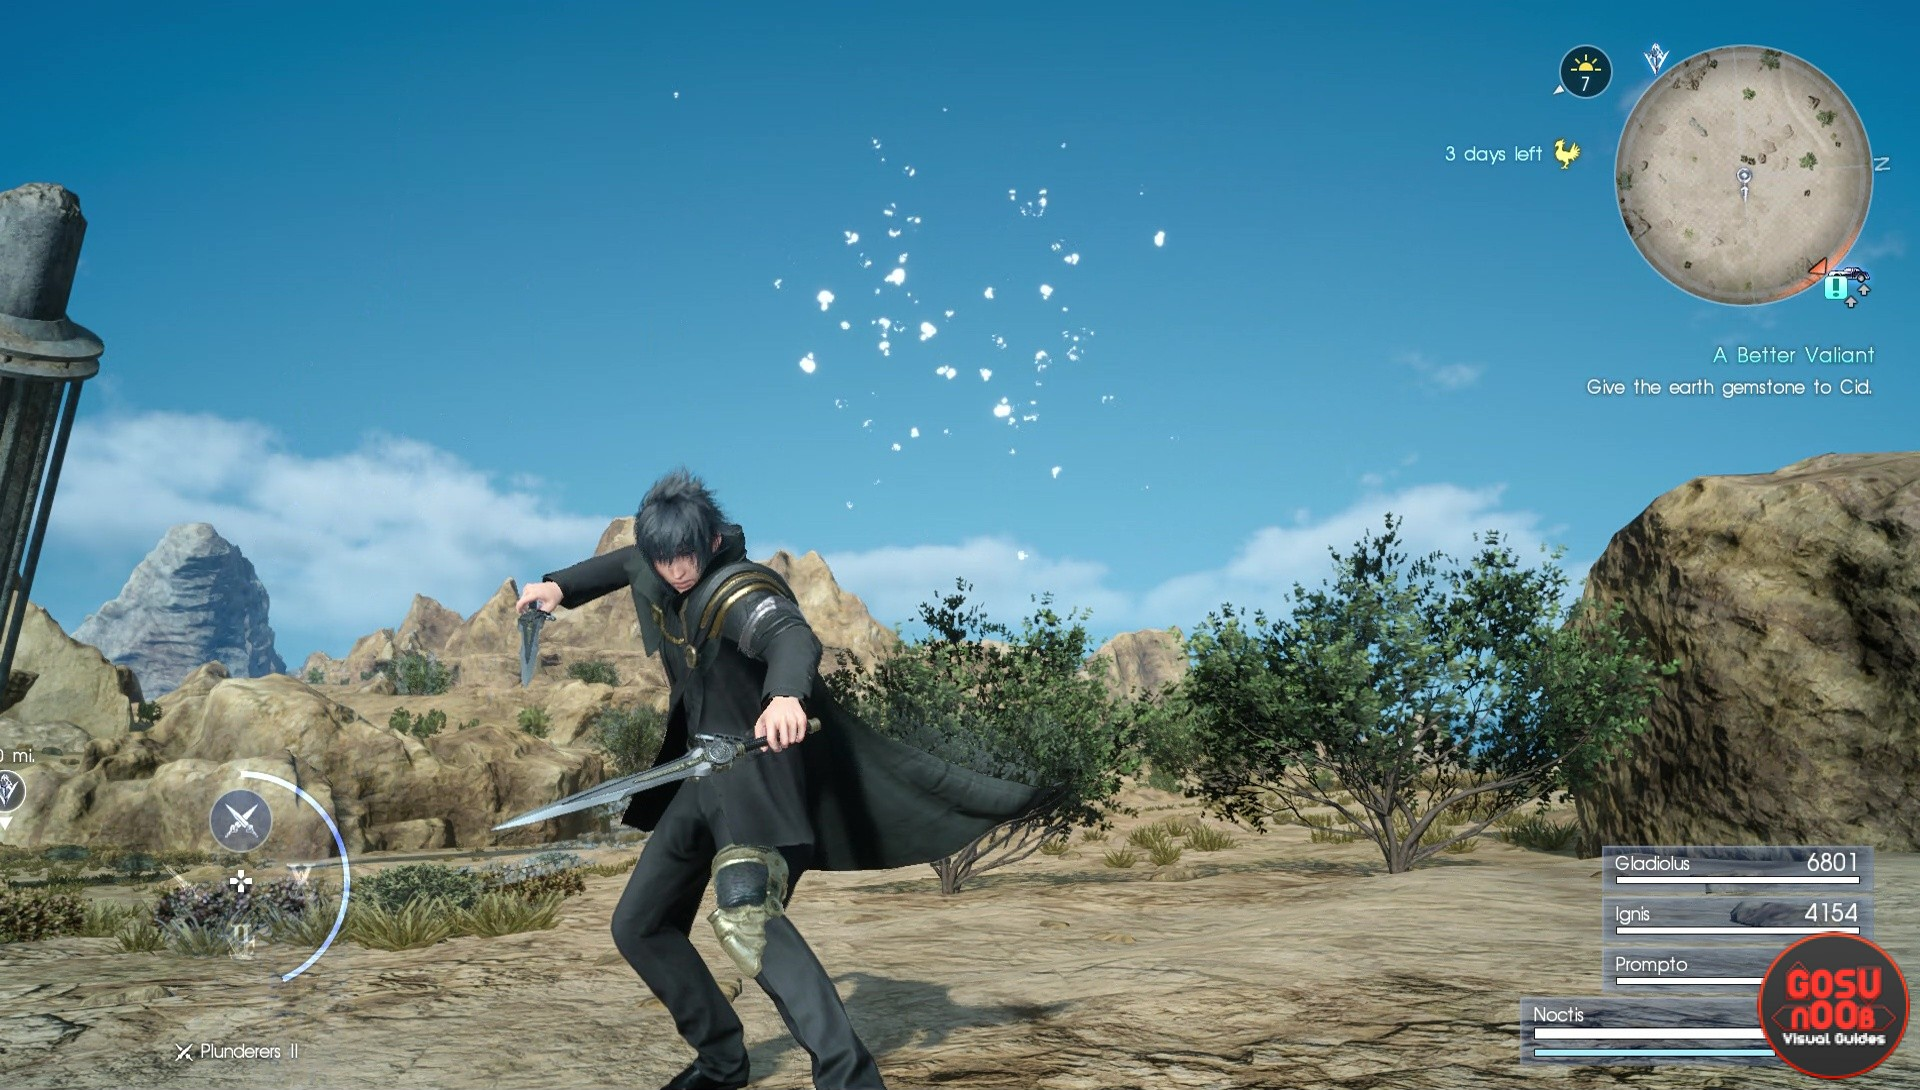 FFXV Better Pair of Plunderers Quest